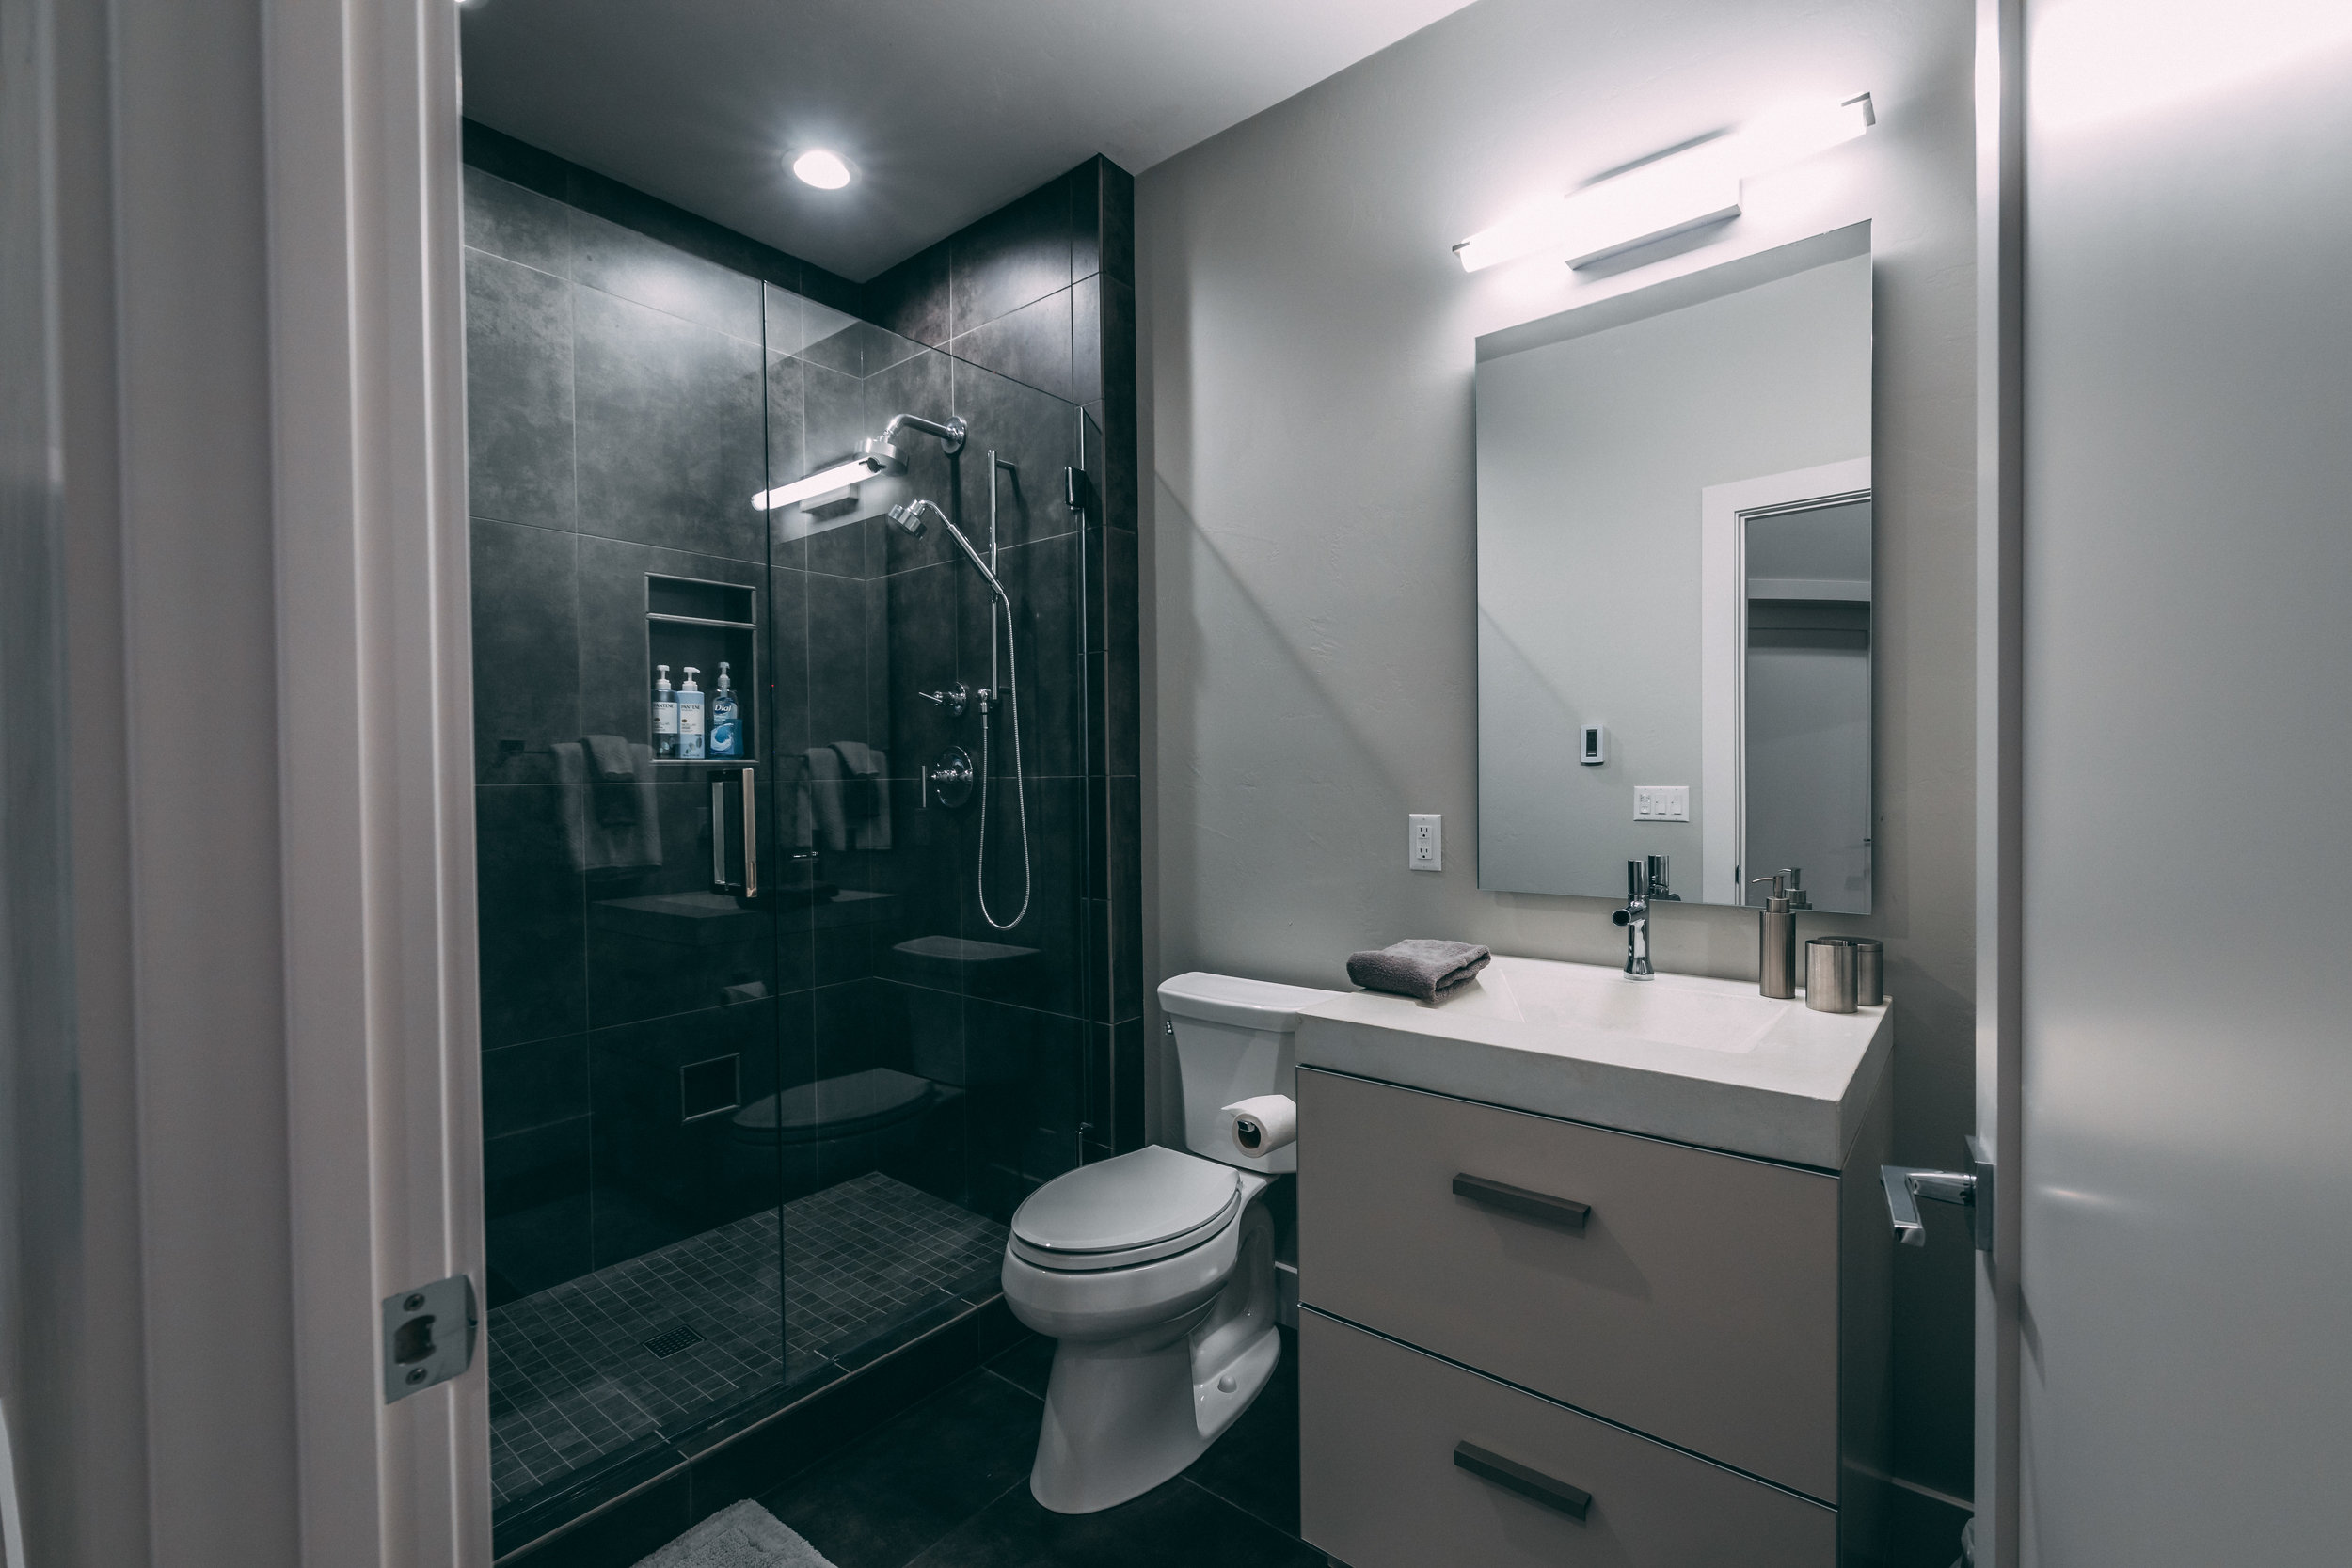 Monte Carlo's guest bathroom is created around KOHLER's simplistic and strong faucets and quality.